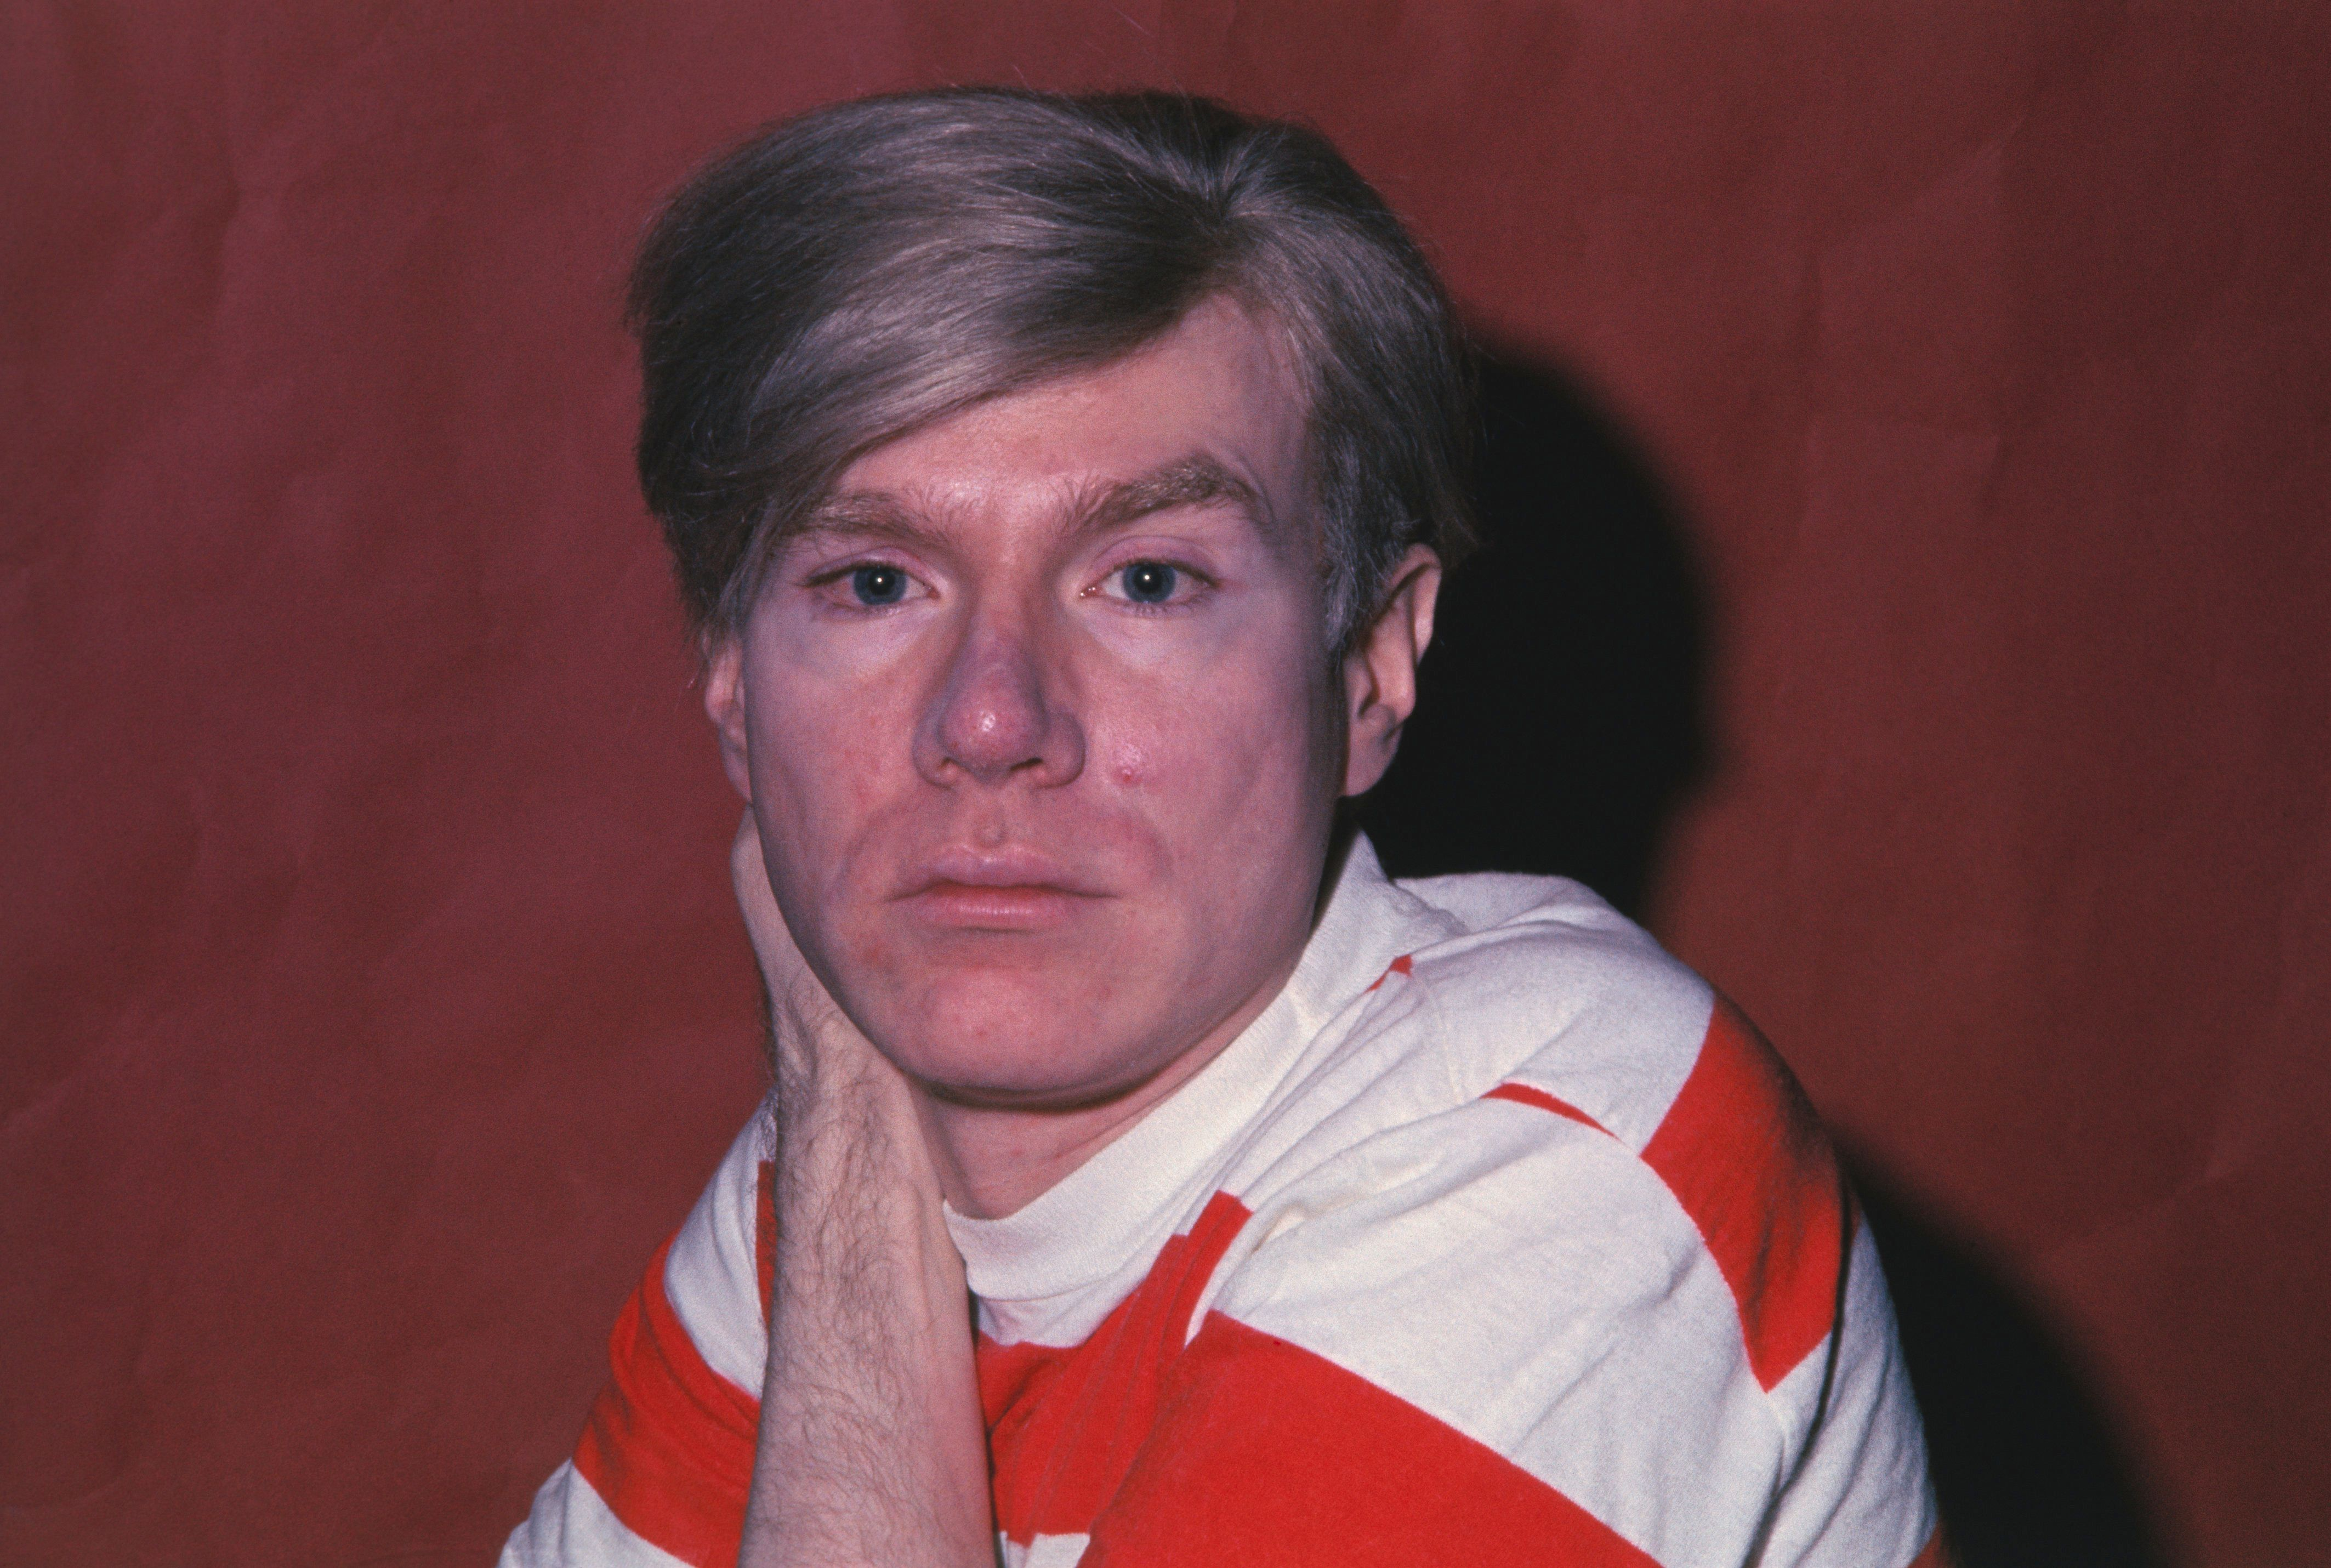 (Original Caption) Pop Artist Andy Warhol is shown posing for close up.